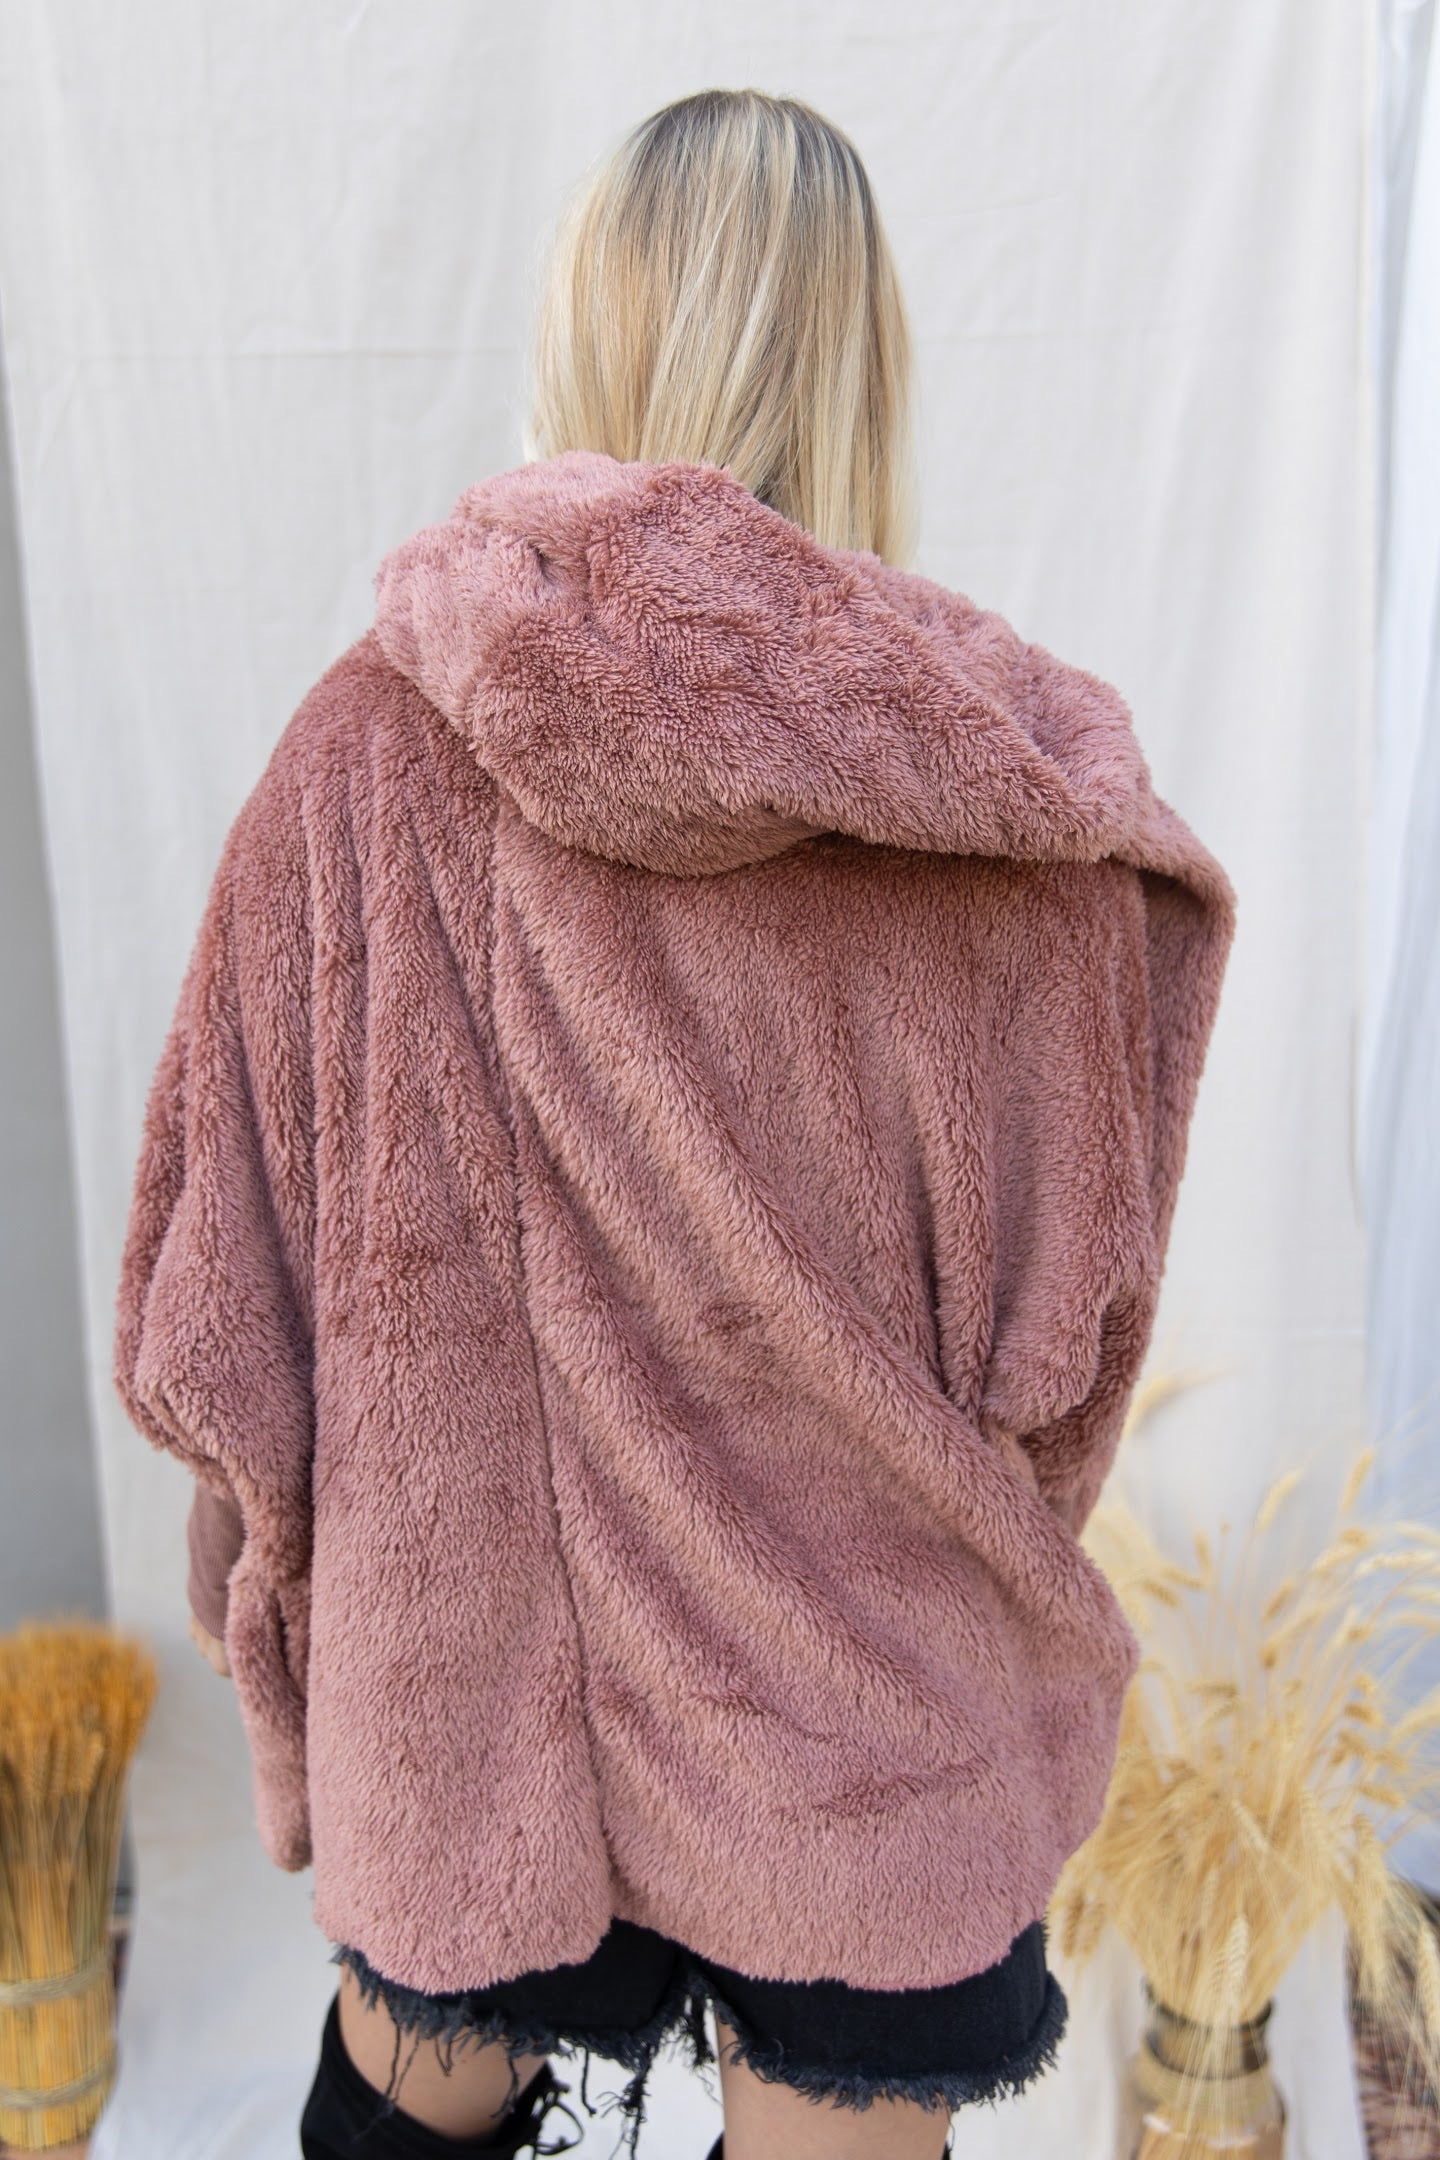 Falling For You Hooded Teddy Jacket: Mauve